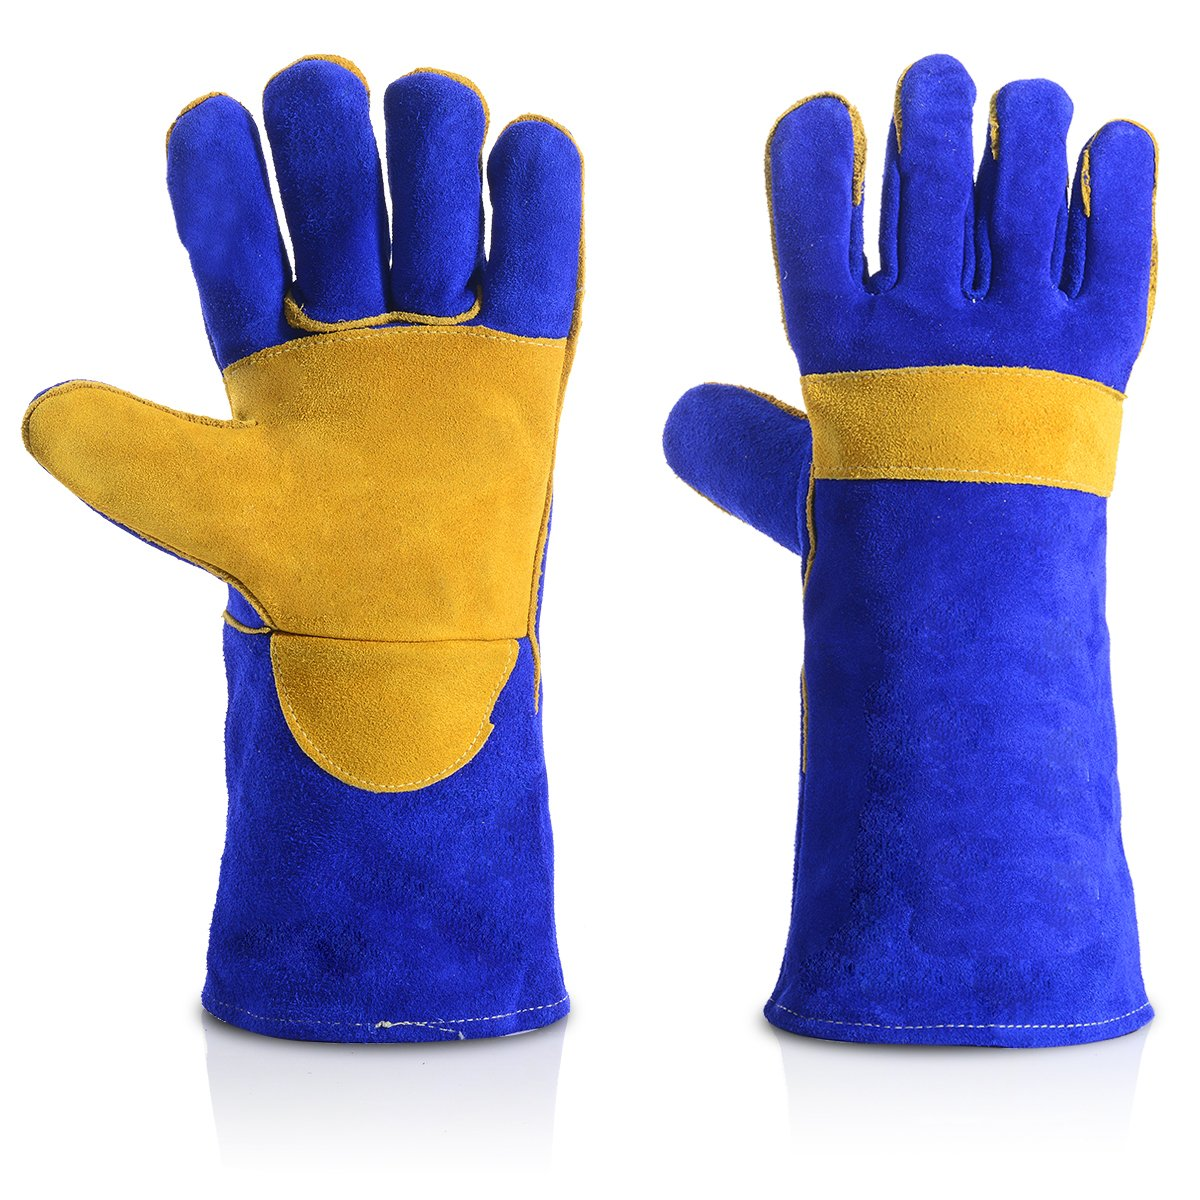 QeeLink Leather Fireplace Gloves, Heat resistant - Perfect for Gardening/Oven/Grill/Mig/Fireplace/Stove/Pot Holder/Tig Welding/Animal Handling/BBQ, Blue (14 inches, Blue)